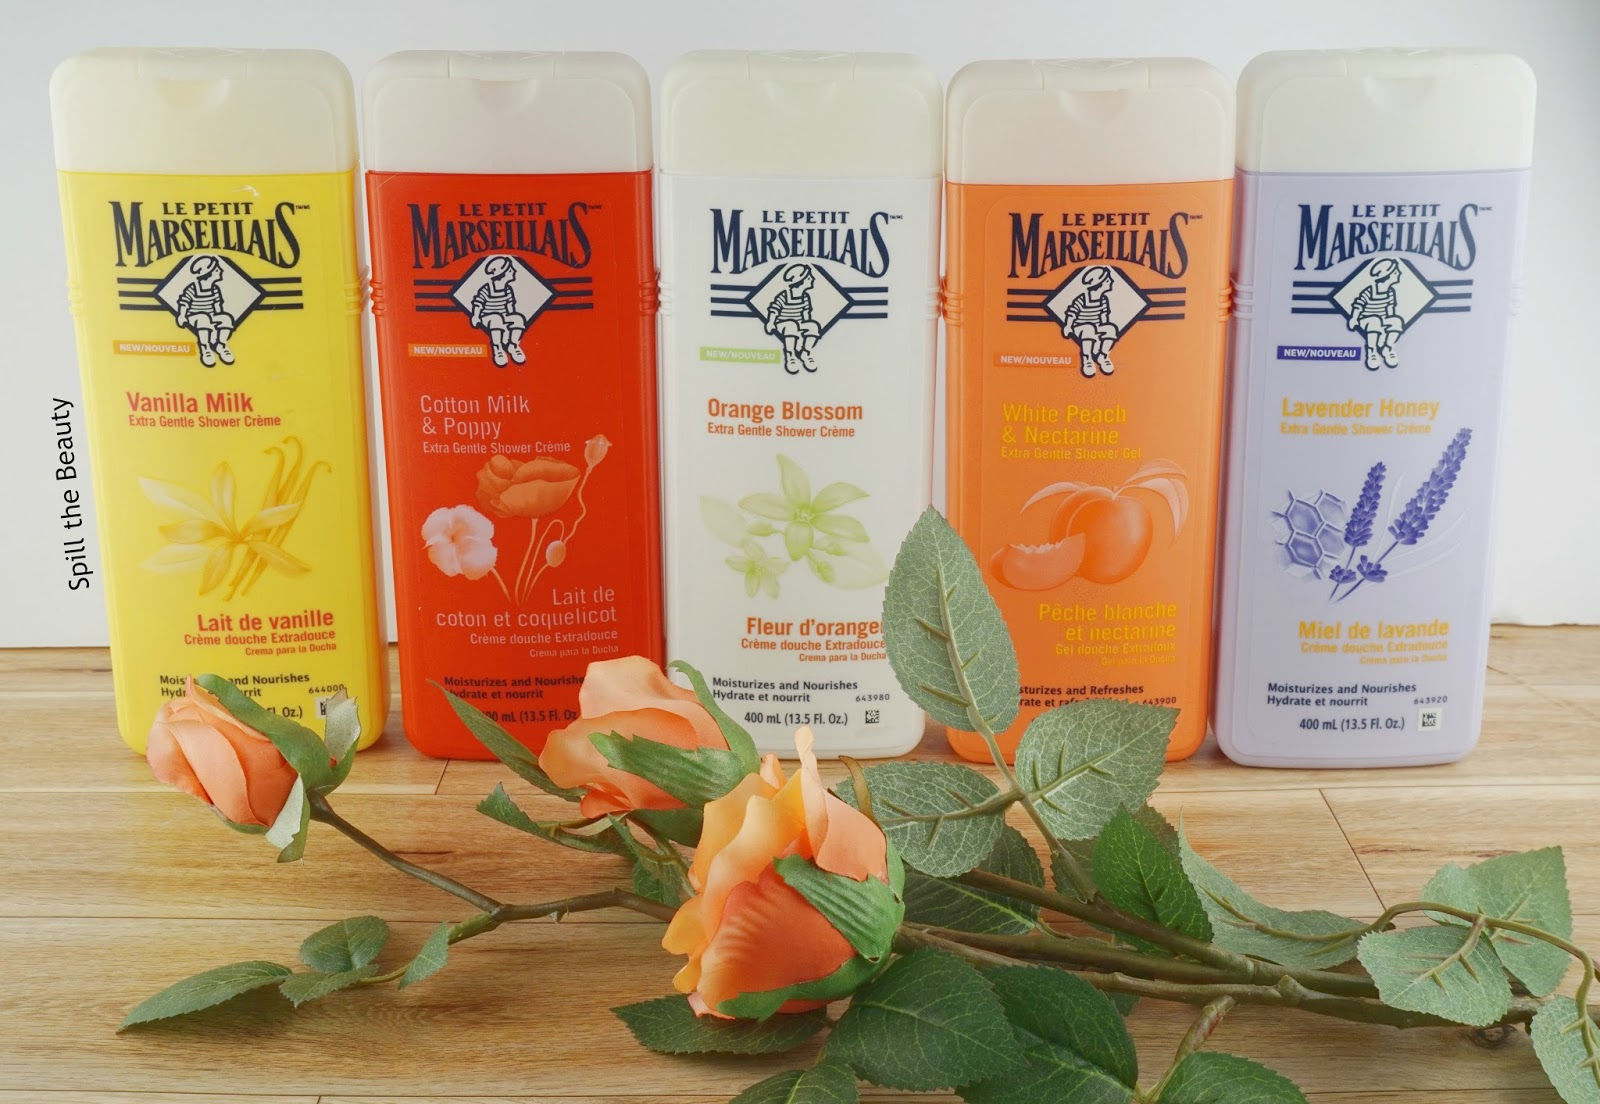 Le Petit Marseillais Extra Gentle Shower Products – Information